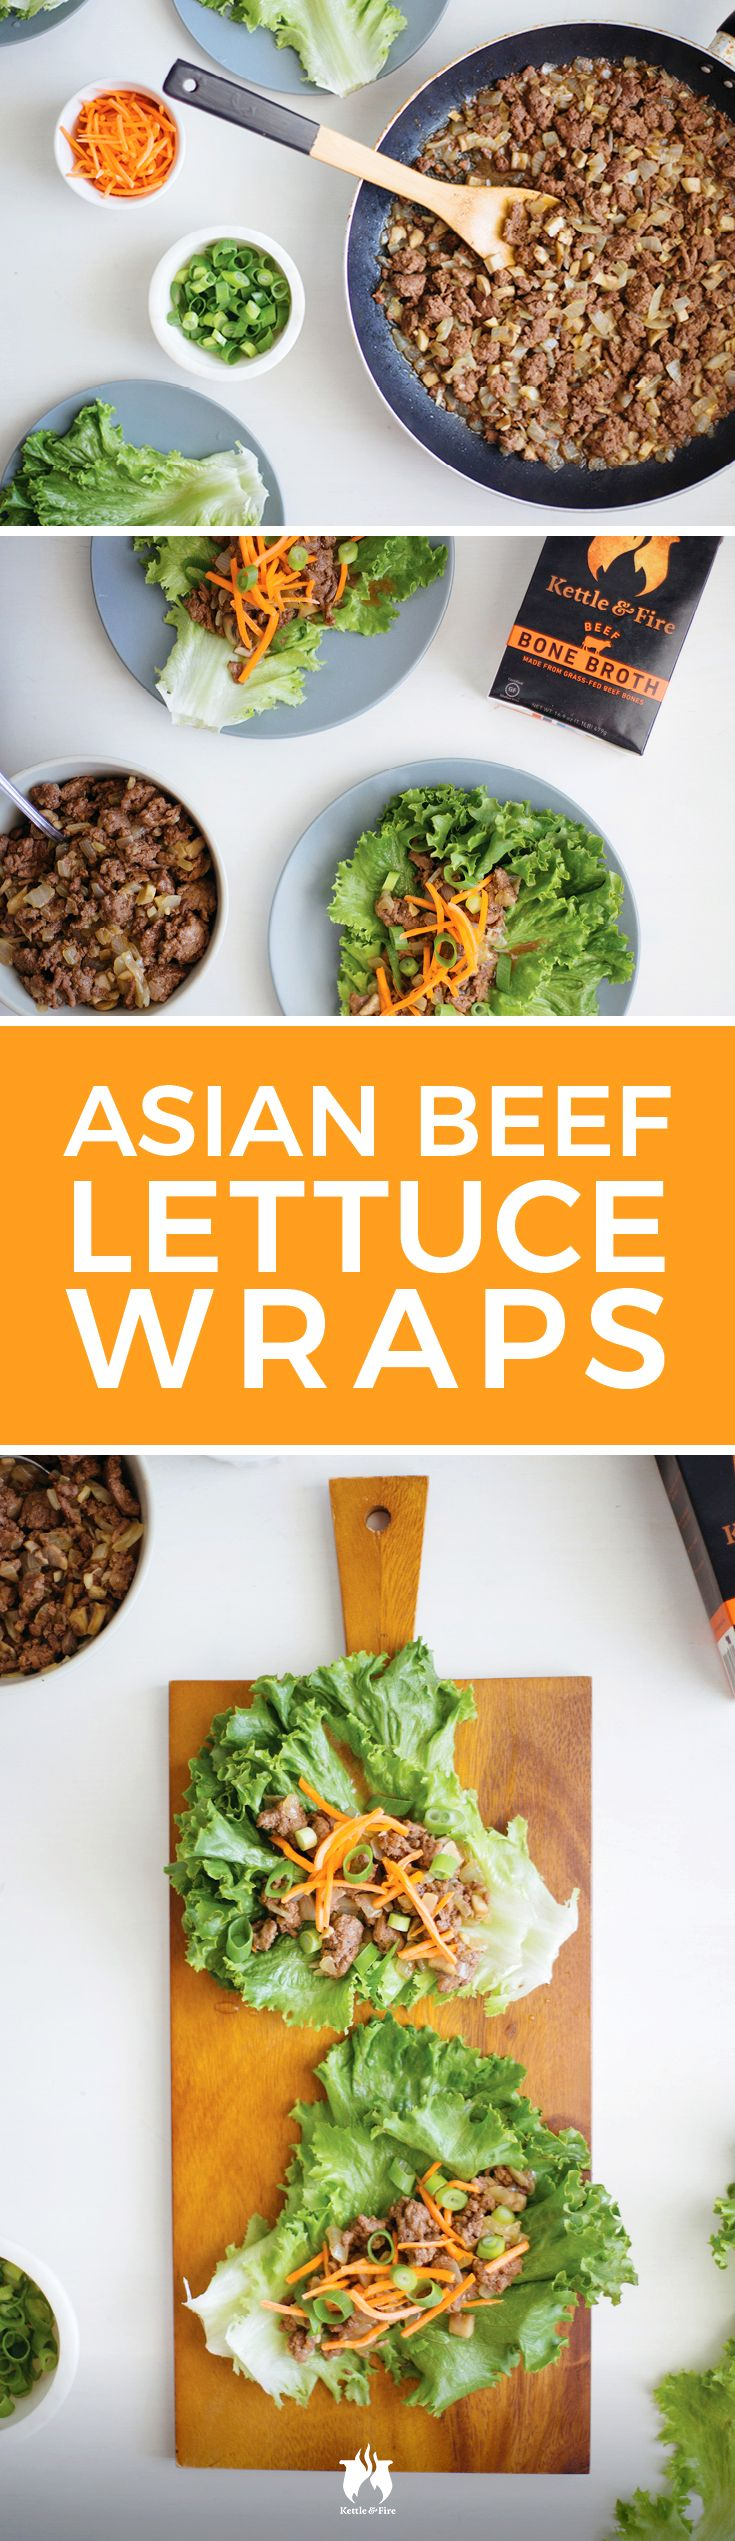 Refreshing lettuce wraps with a savory filling packed with flavor and nutrients from simmering in Kettle & Fire beef bone broth! It only takes 30 minutes.